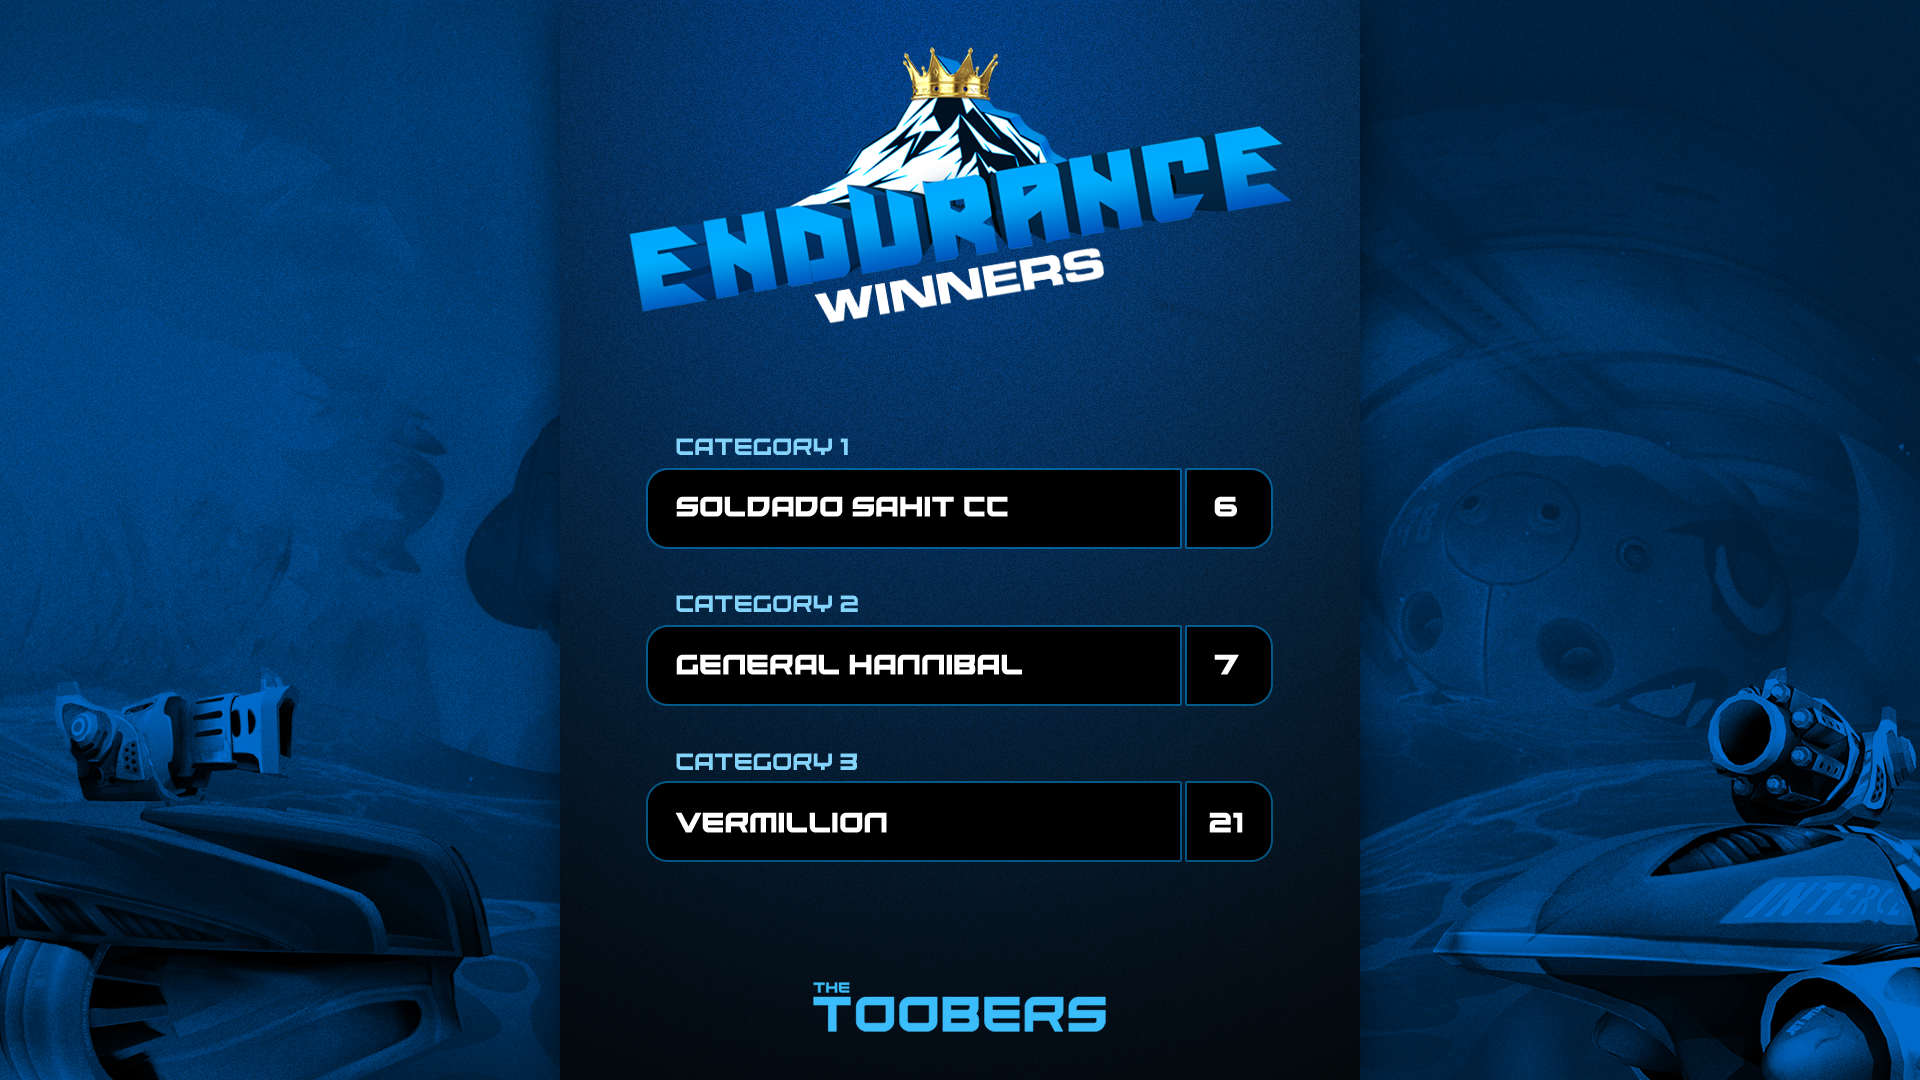 Endurance_1_-_Winners.png